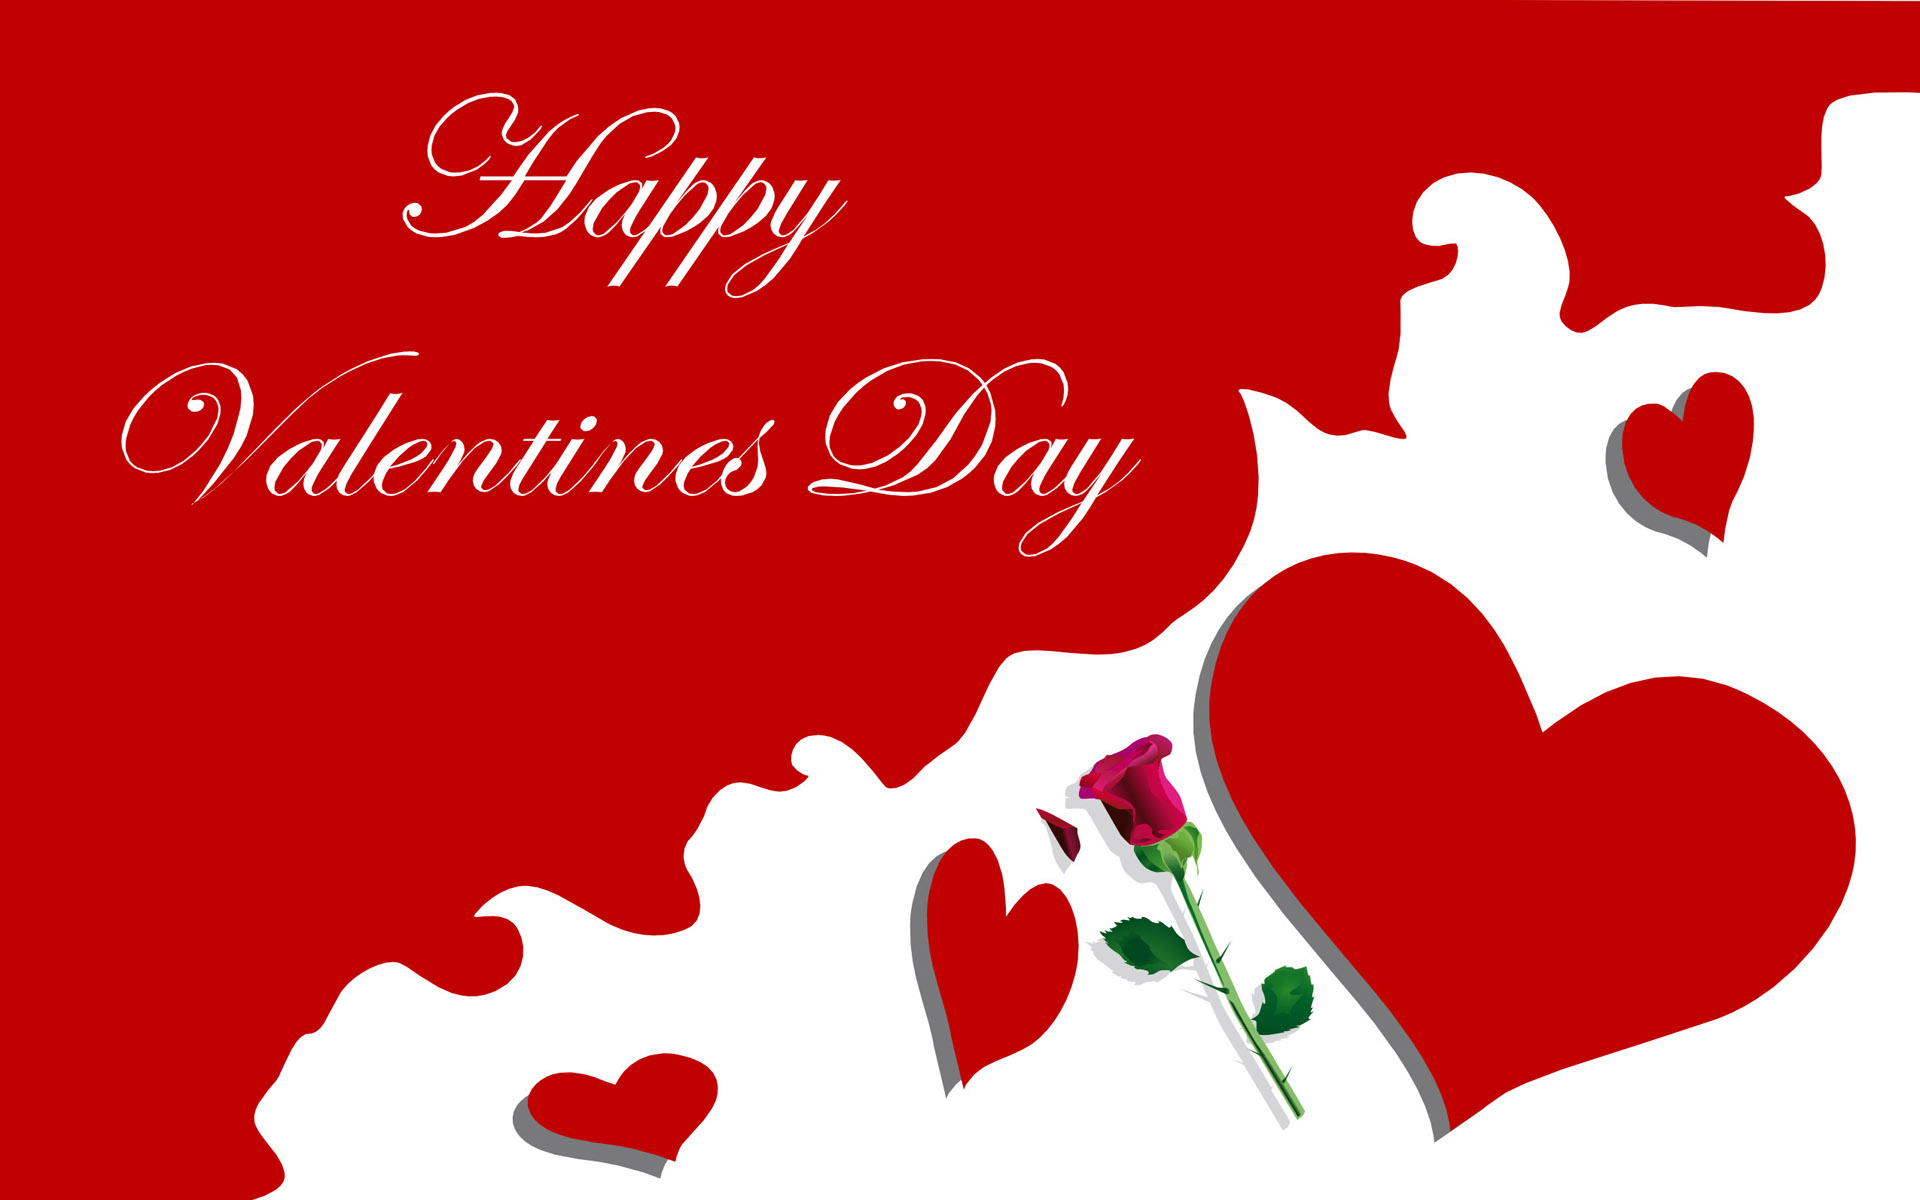 Valentines-Day-greeting-card-background-full-hd-11